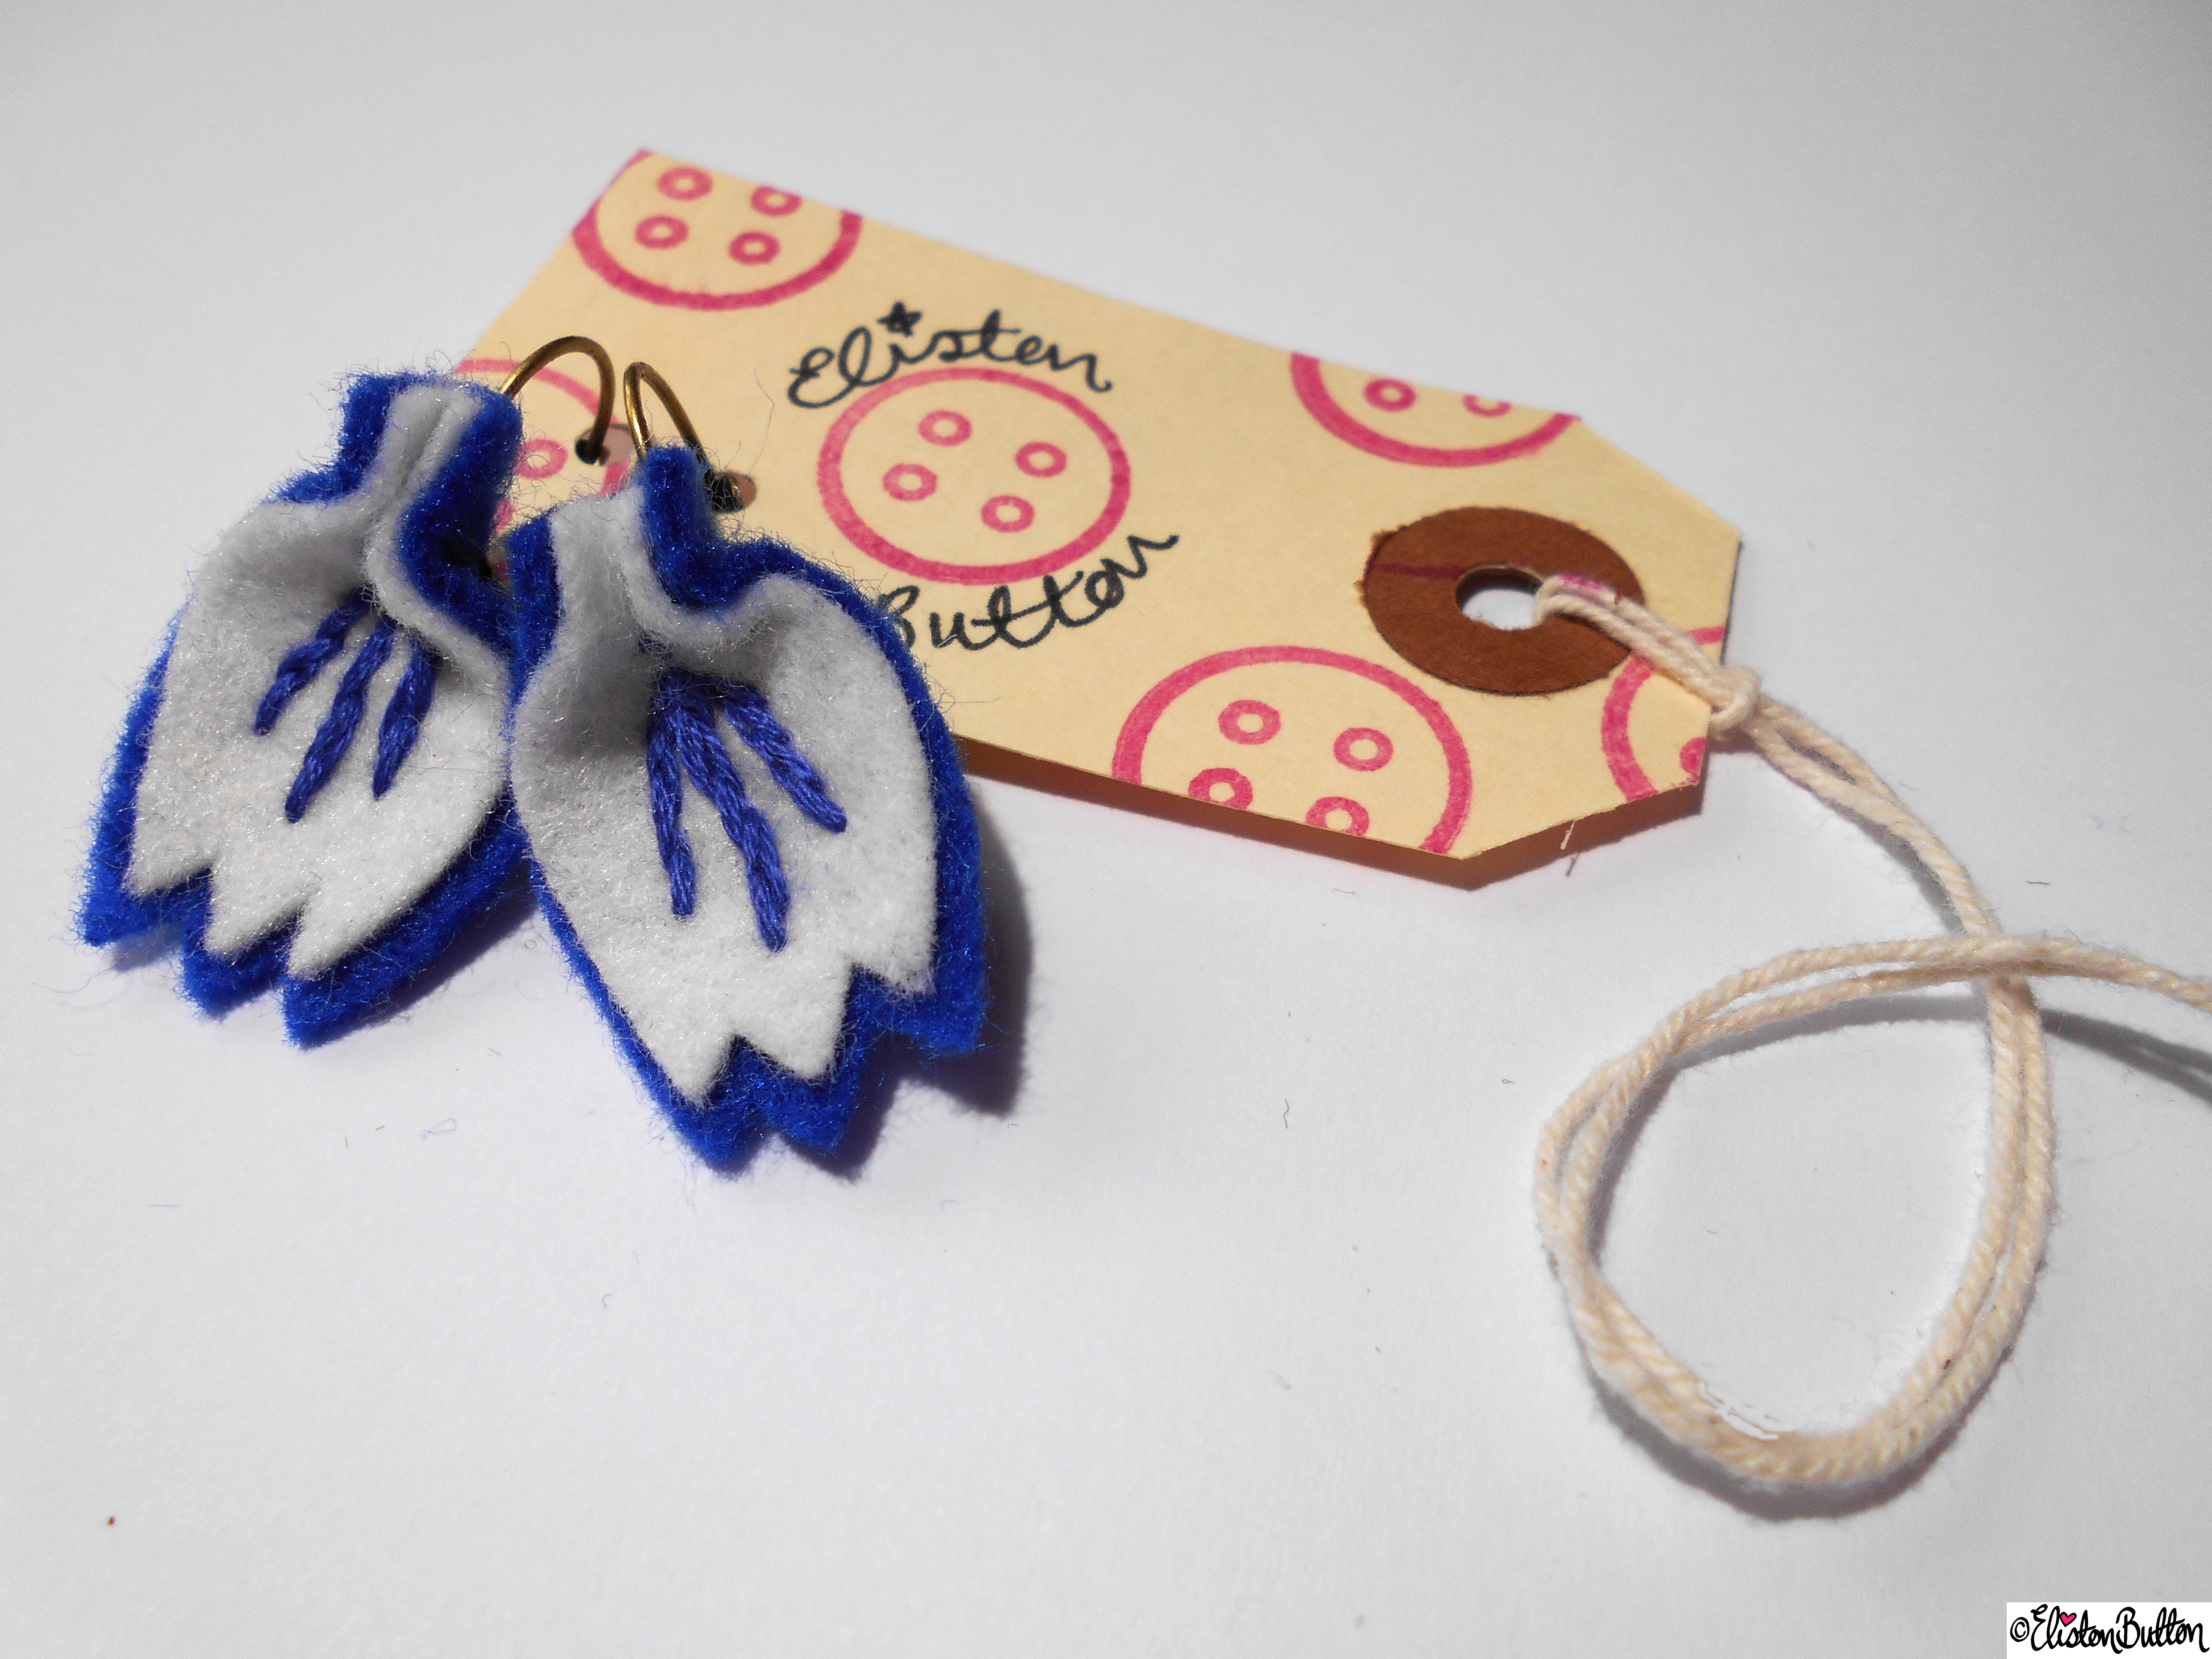 Blue and White Embroidered Felt Petal Earrings and Eliston Button Tag - Create 28 - No.2 - Embroidered Felt Petal Earrings at www.elistonbutton.com - Eliston Button - That Crafty Kid – Art, Design, Craft & Adventure.